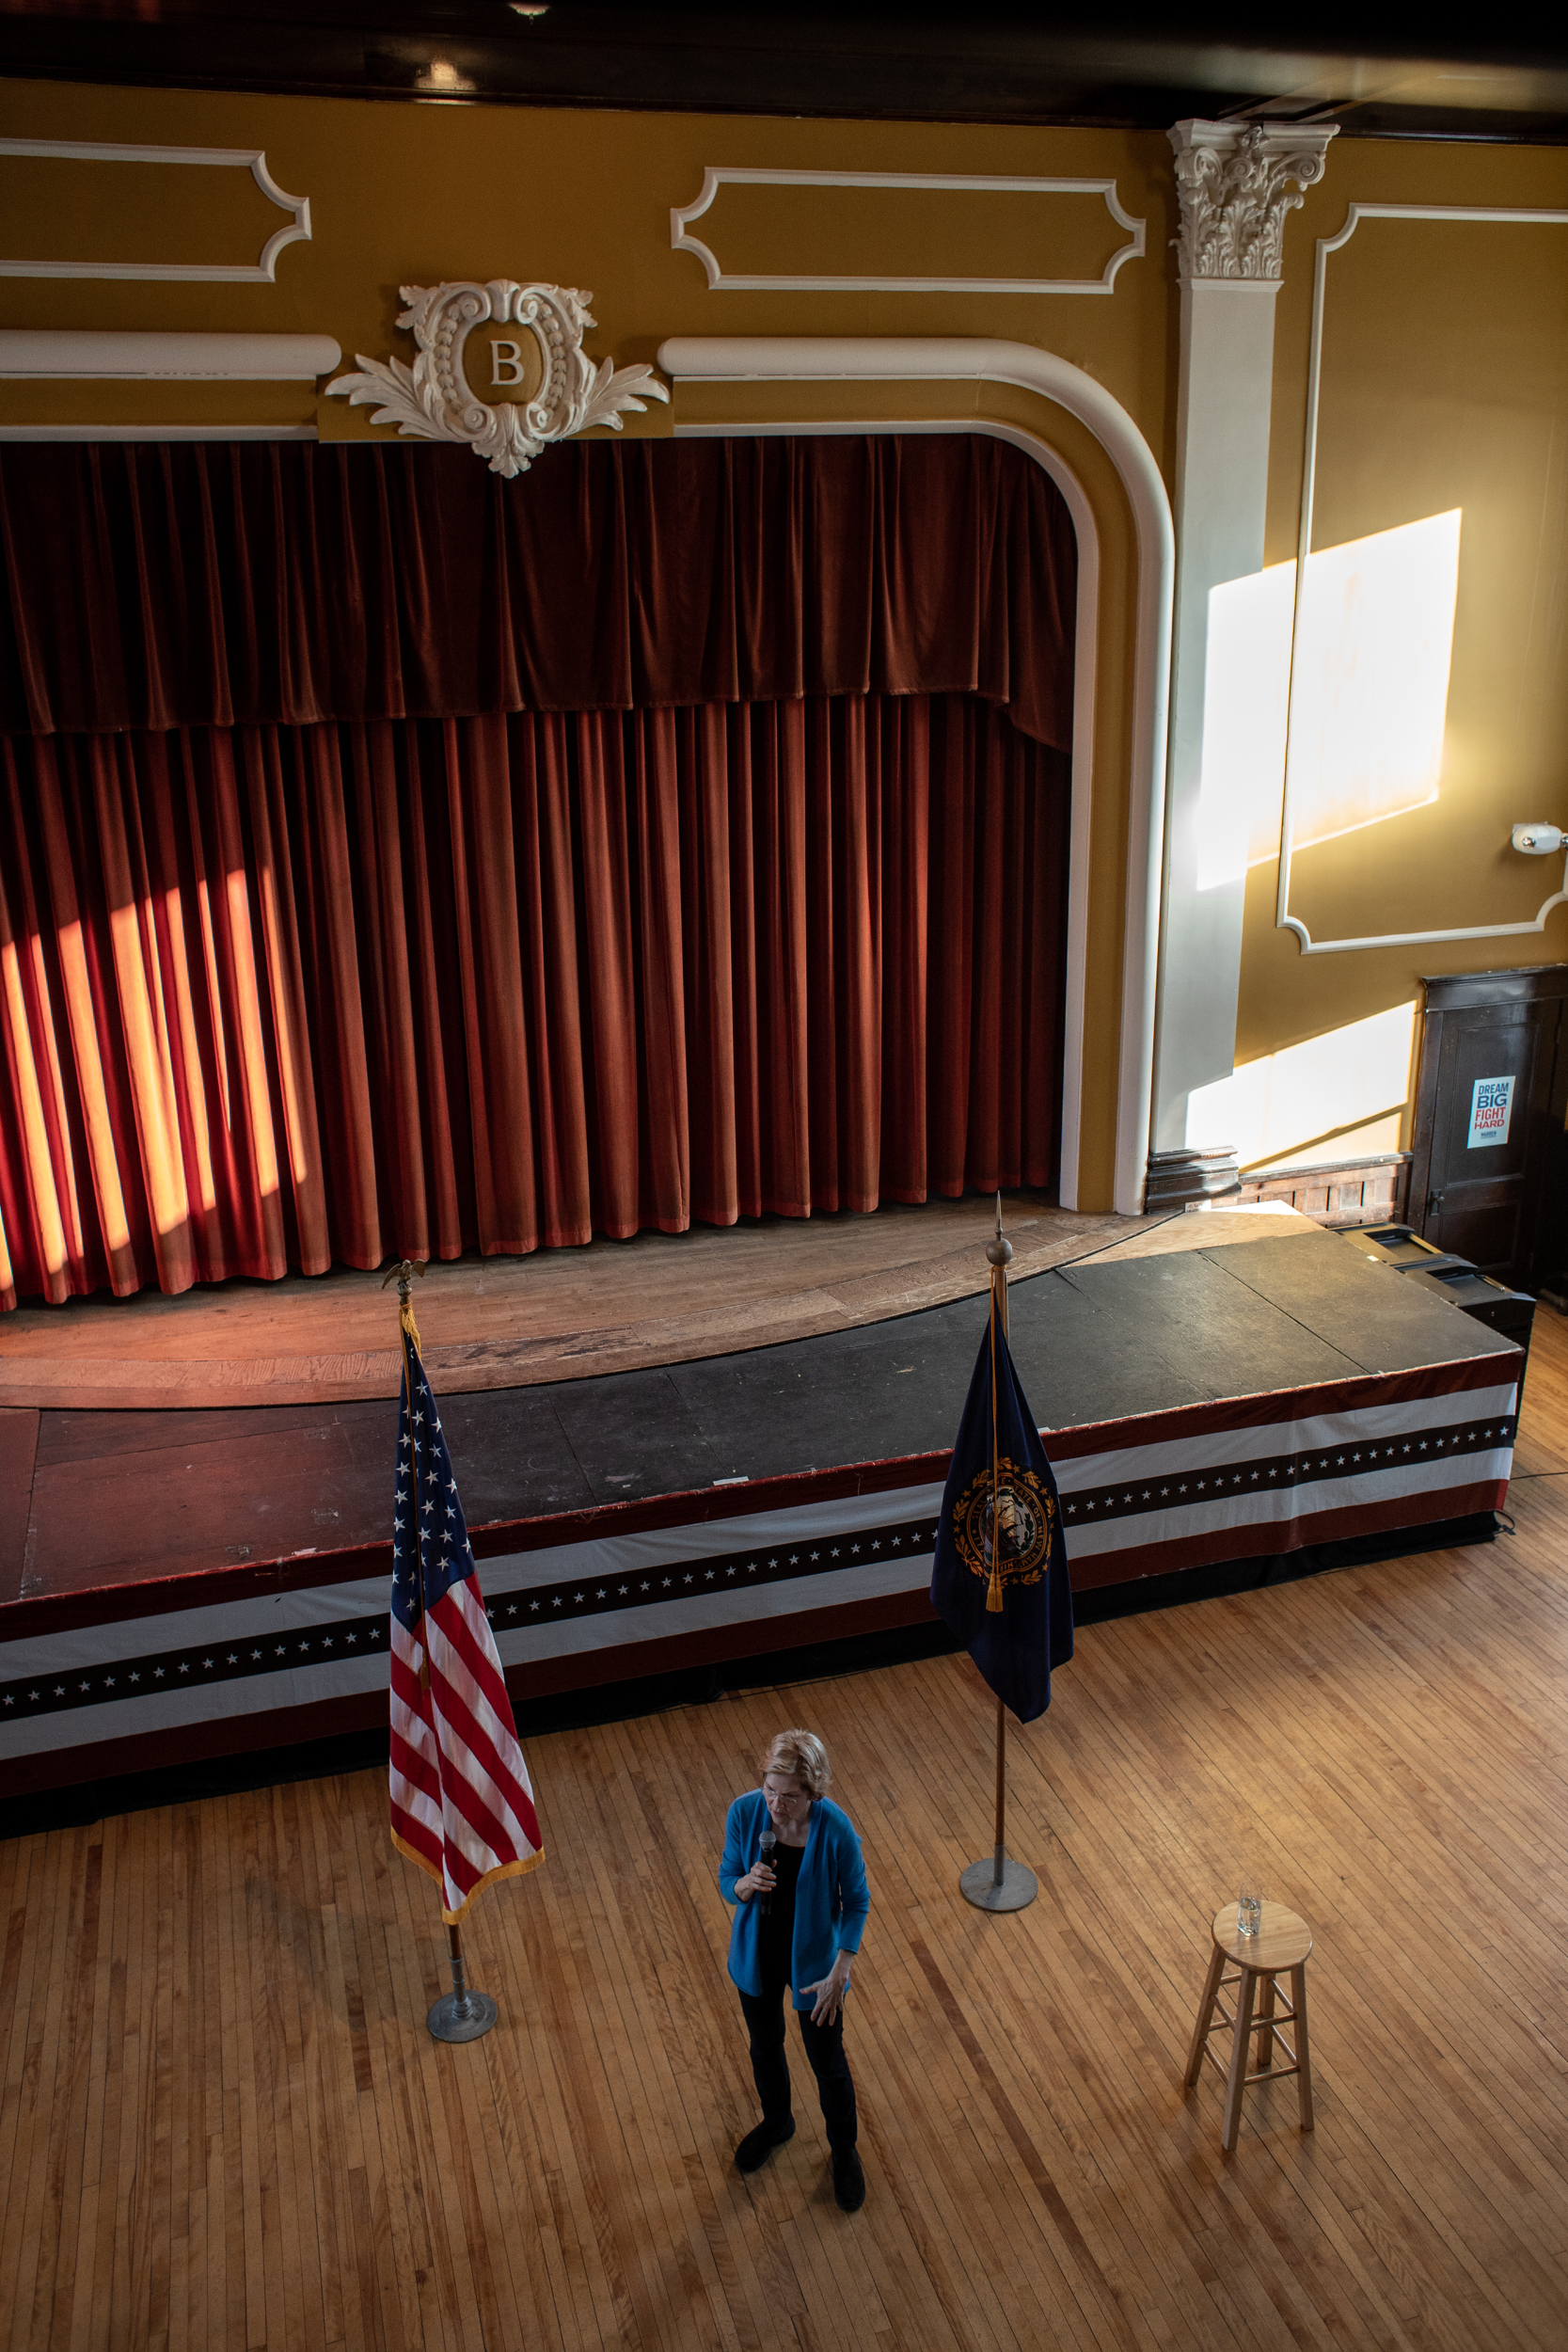 Senator Elizabeth Warren of Massachusetts held a campaign stop in Berlin, New Hampshire on Saturday, March 23, 2019. Warren campaigned throughout northern New Hampshire as part of her bid for president. Before heading to Berlin, Warren hosted a panel discussion called 'Community Conversations with Elizabeth Warren on the Opioid Crisis' at the Littleton High School in Littleton, New Hampshire. According to the National Institute on Drug Abuse, New Hampshire is second in the country for highest opioid-related overdose deaths. The U.S. Department of Health and Human Services recently announced New Hampshire will be allocated an additional $12 million to combat the crisis.